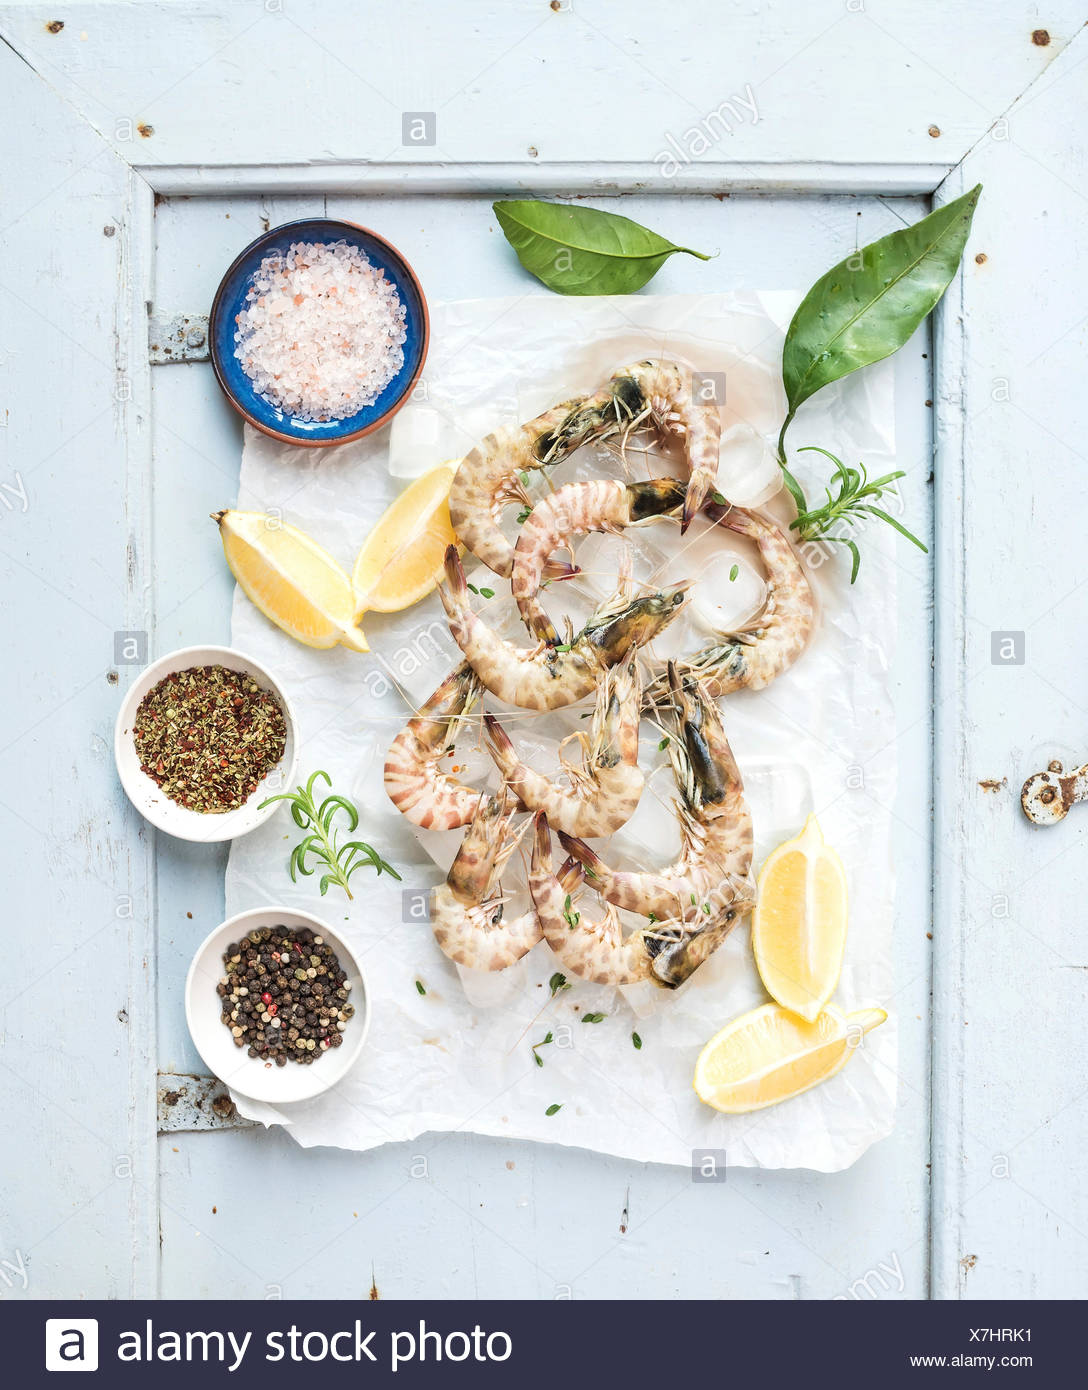 Fresh uncooked shrimps with lemon, herbs, ice and spices on rustic blue wooden board backdrop, top view - Stock Image